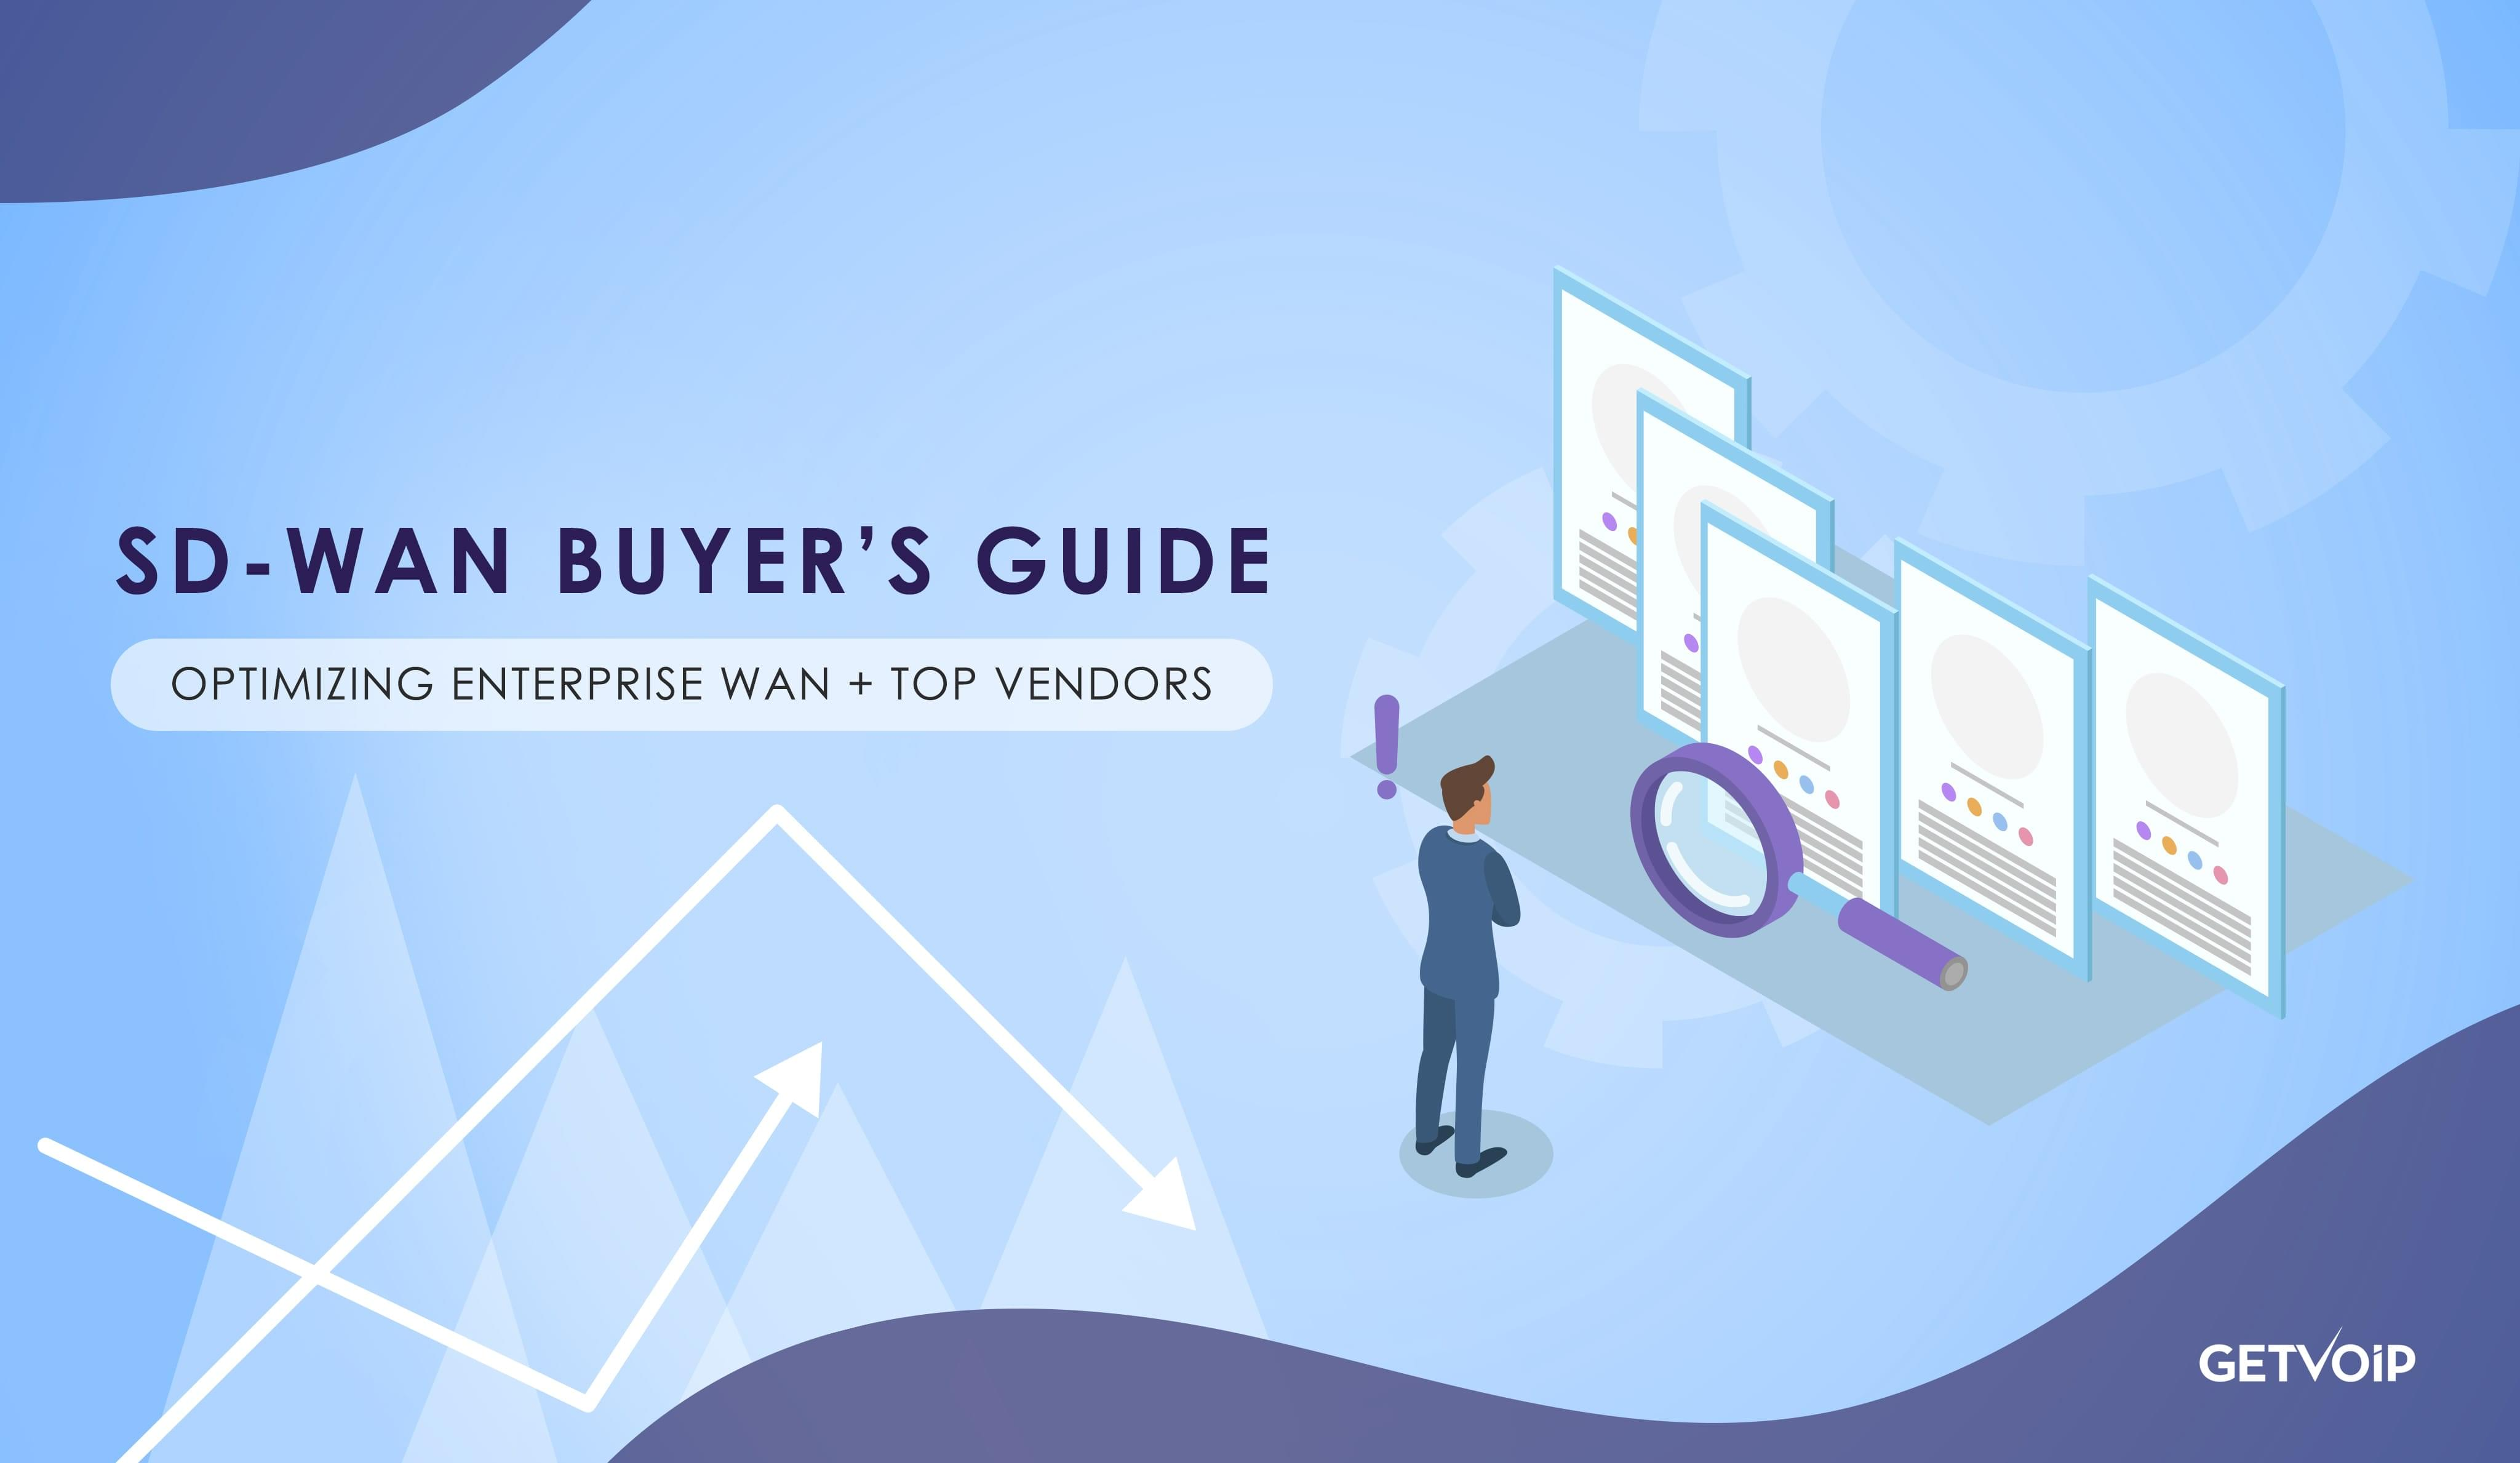 SD-WAN For Business: A Buyer's Guide to Choosing Enterprise SD WAN Vendors